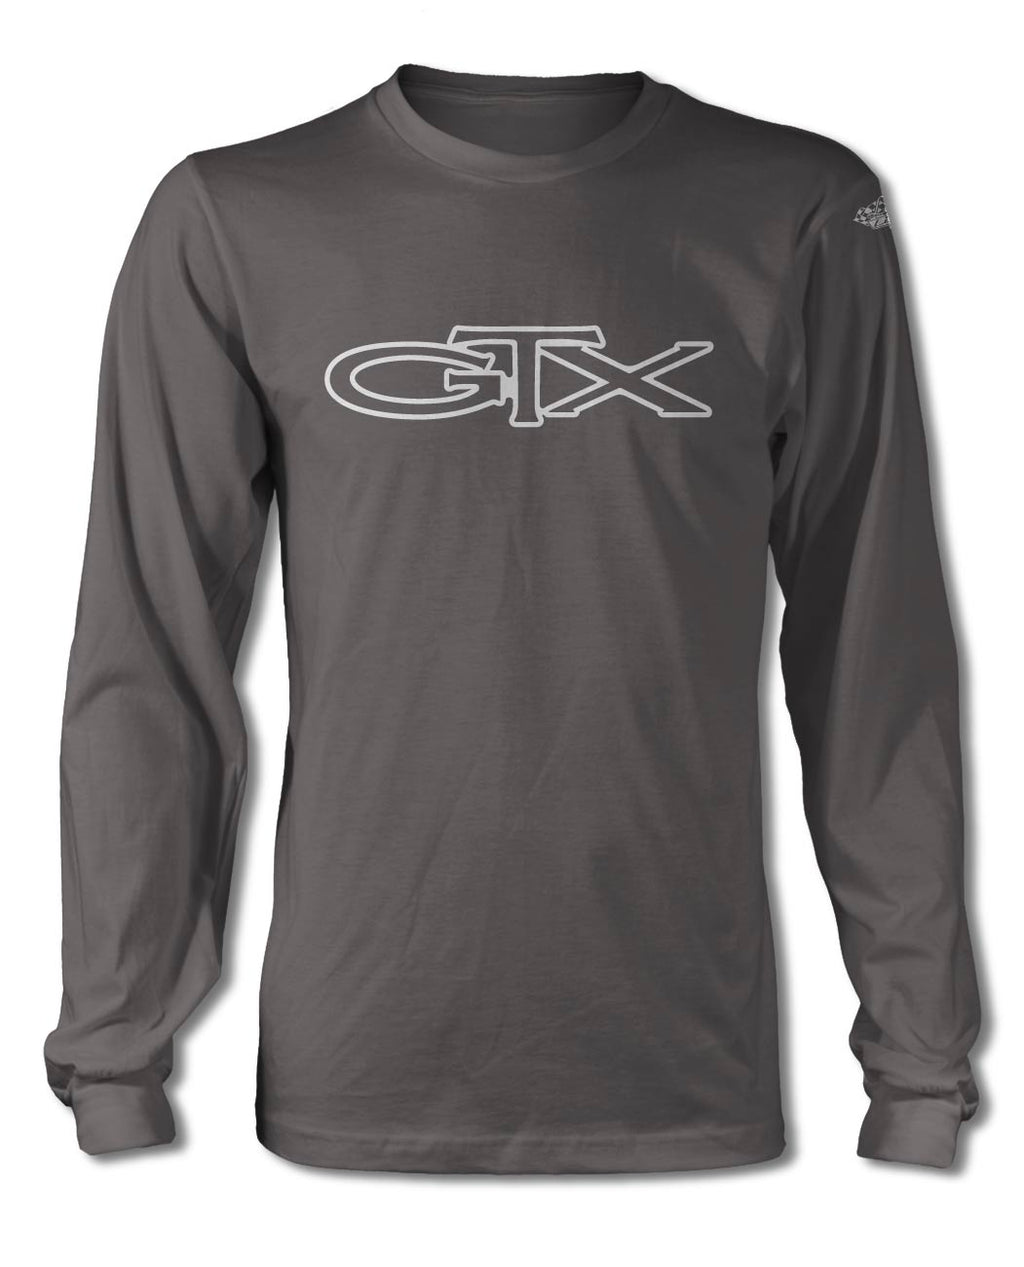 1967 - 1971 Plymouth GTX Emblem T-Shirt - Long Sleeves - Emblem